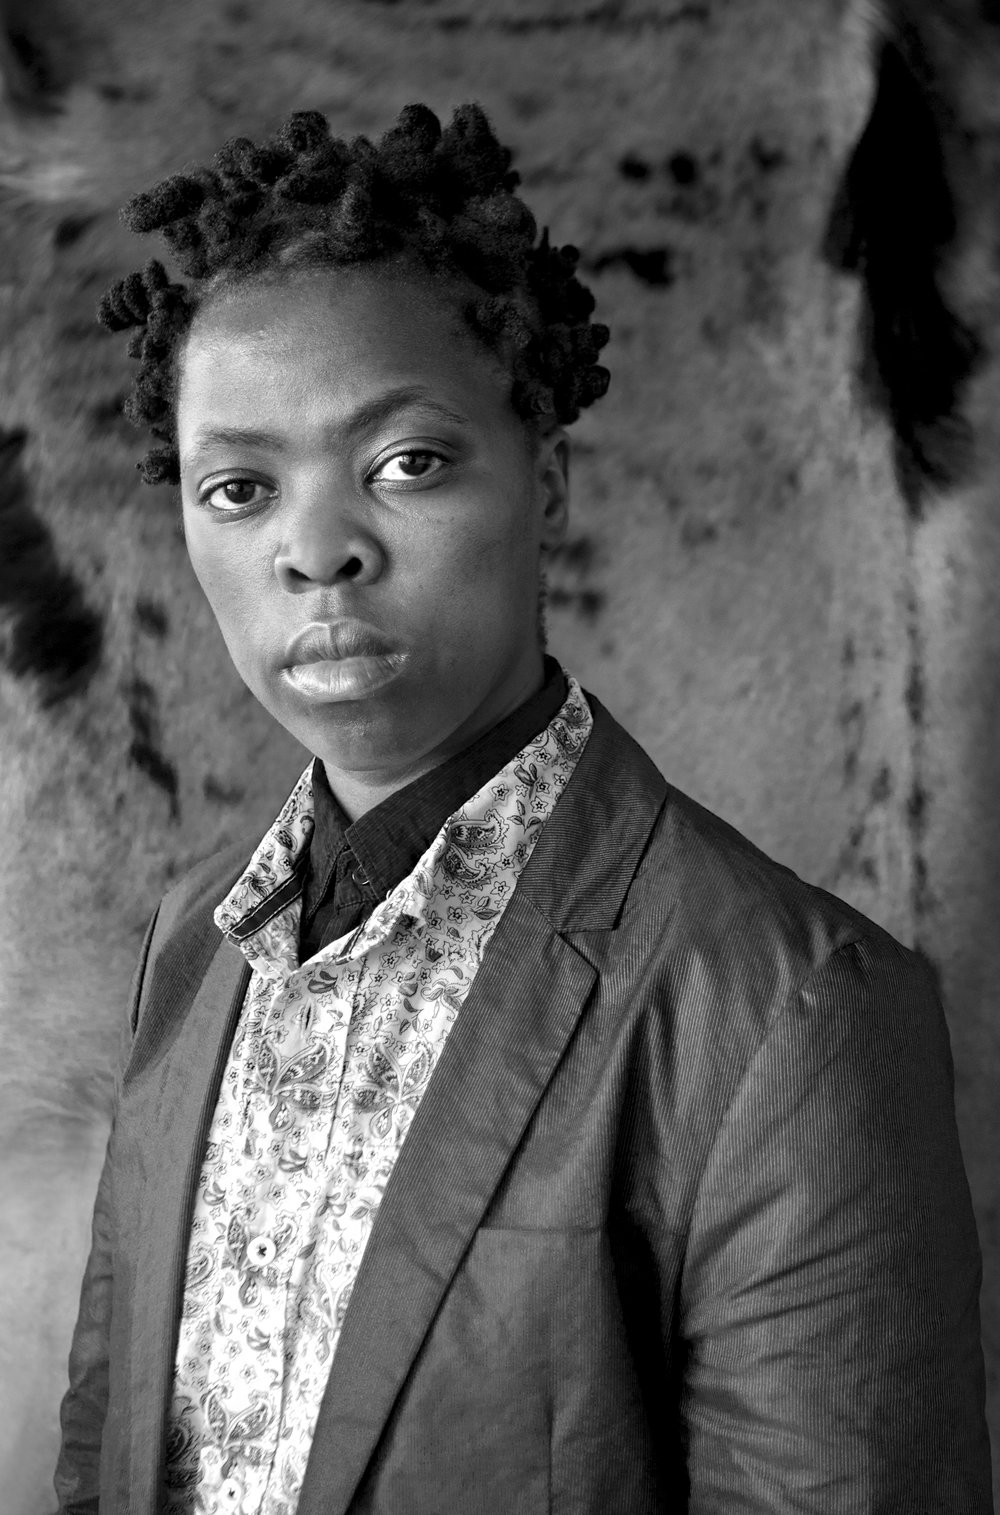 Portrait by Zanele Muholi. All images courtesy of the artist